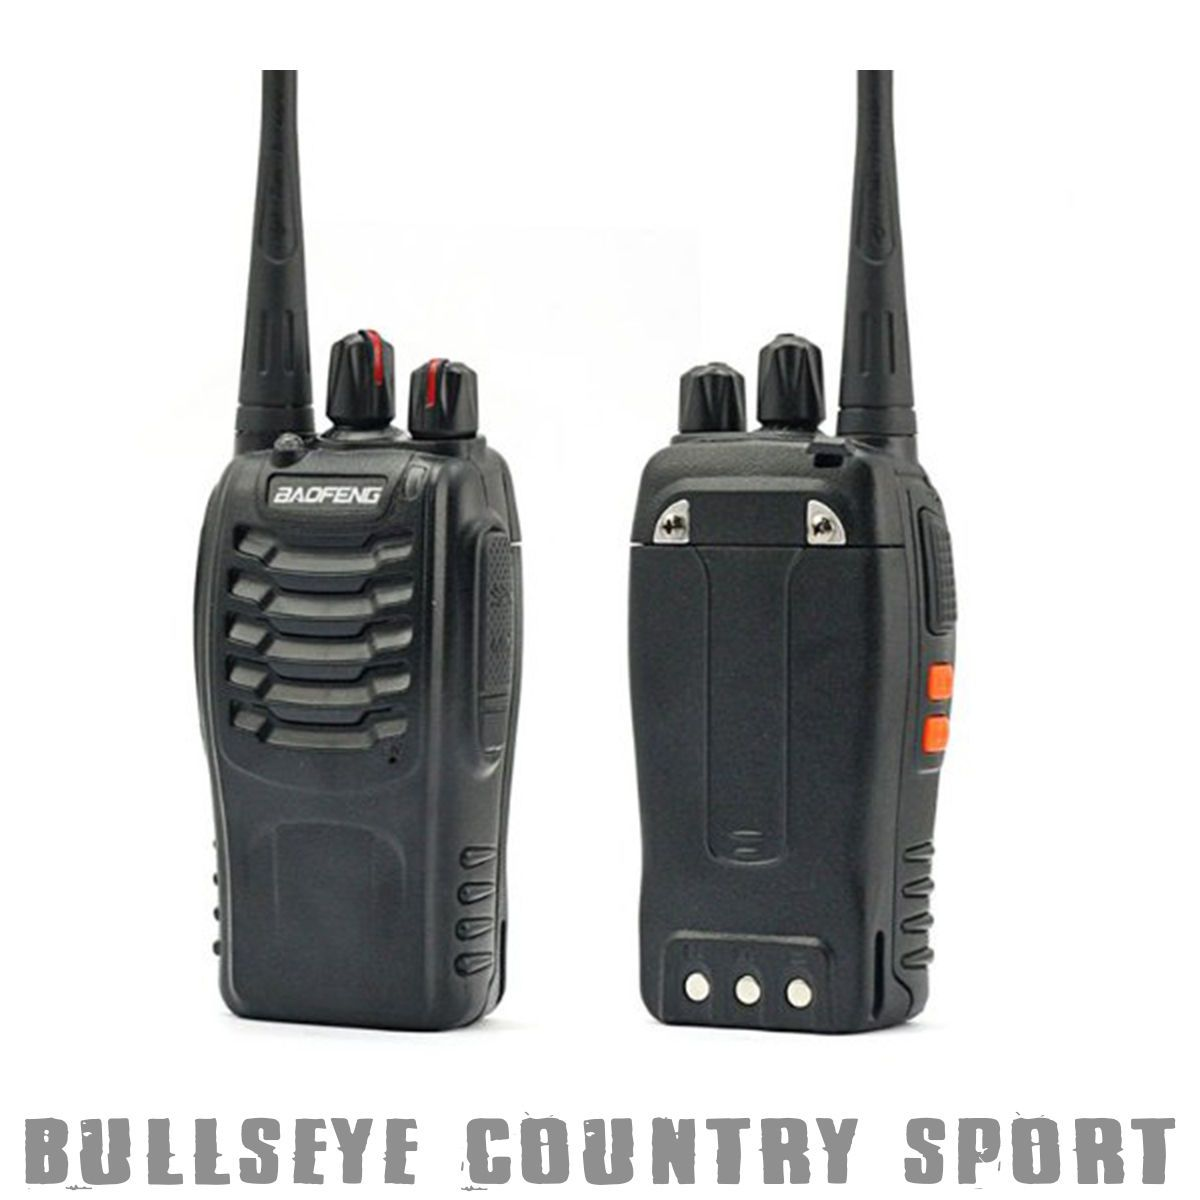 Z-Tactical Airsoft Baofeng 2 Way Radio BF-888S With Scrambler 16 Channel